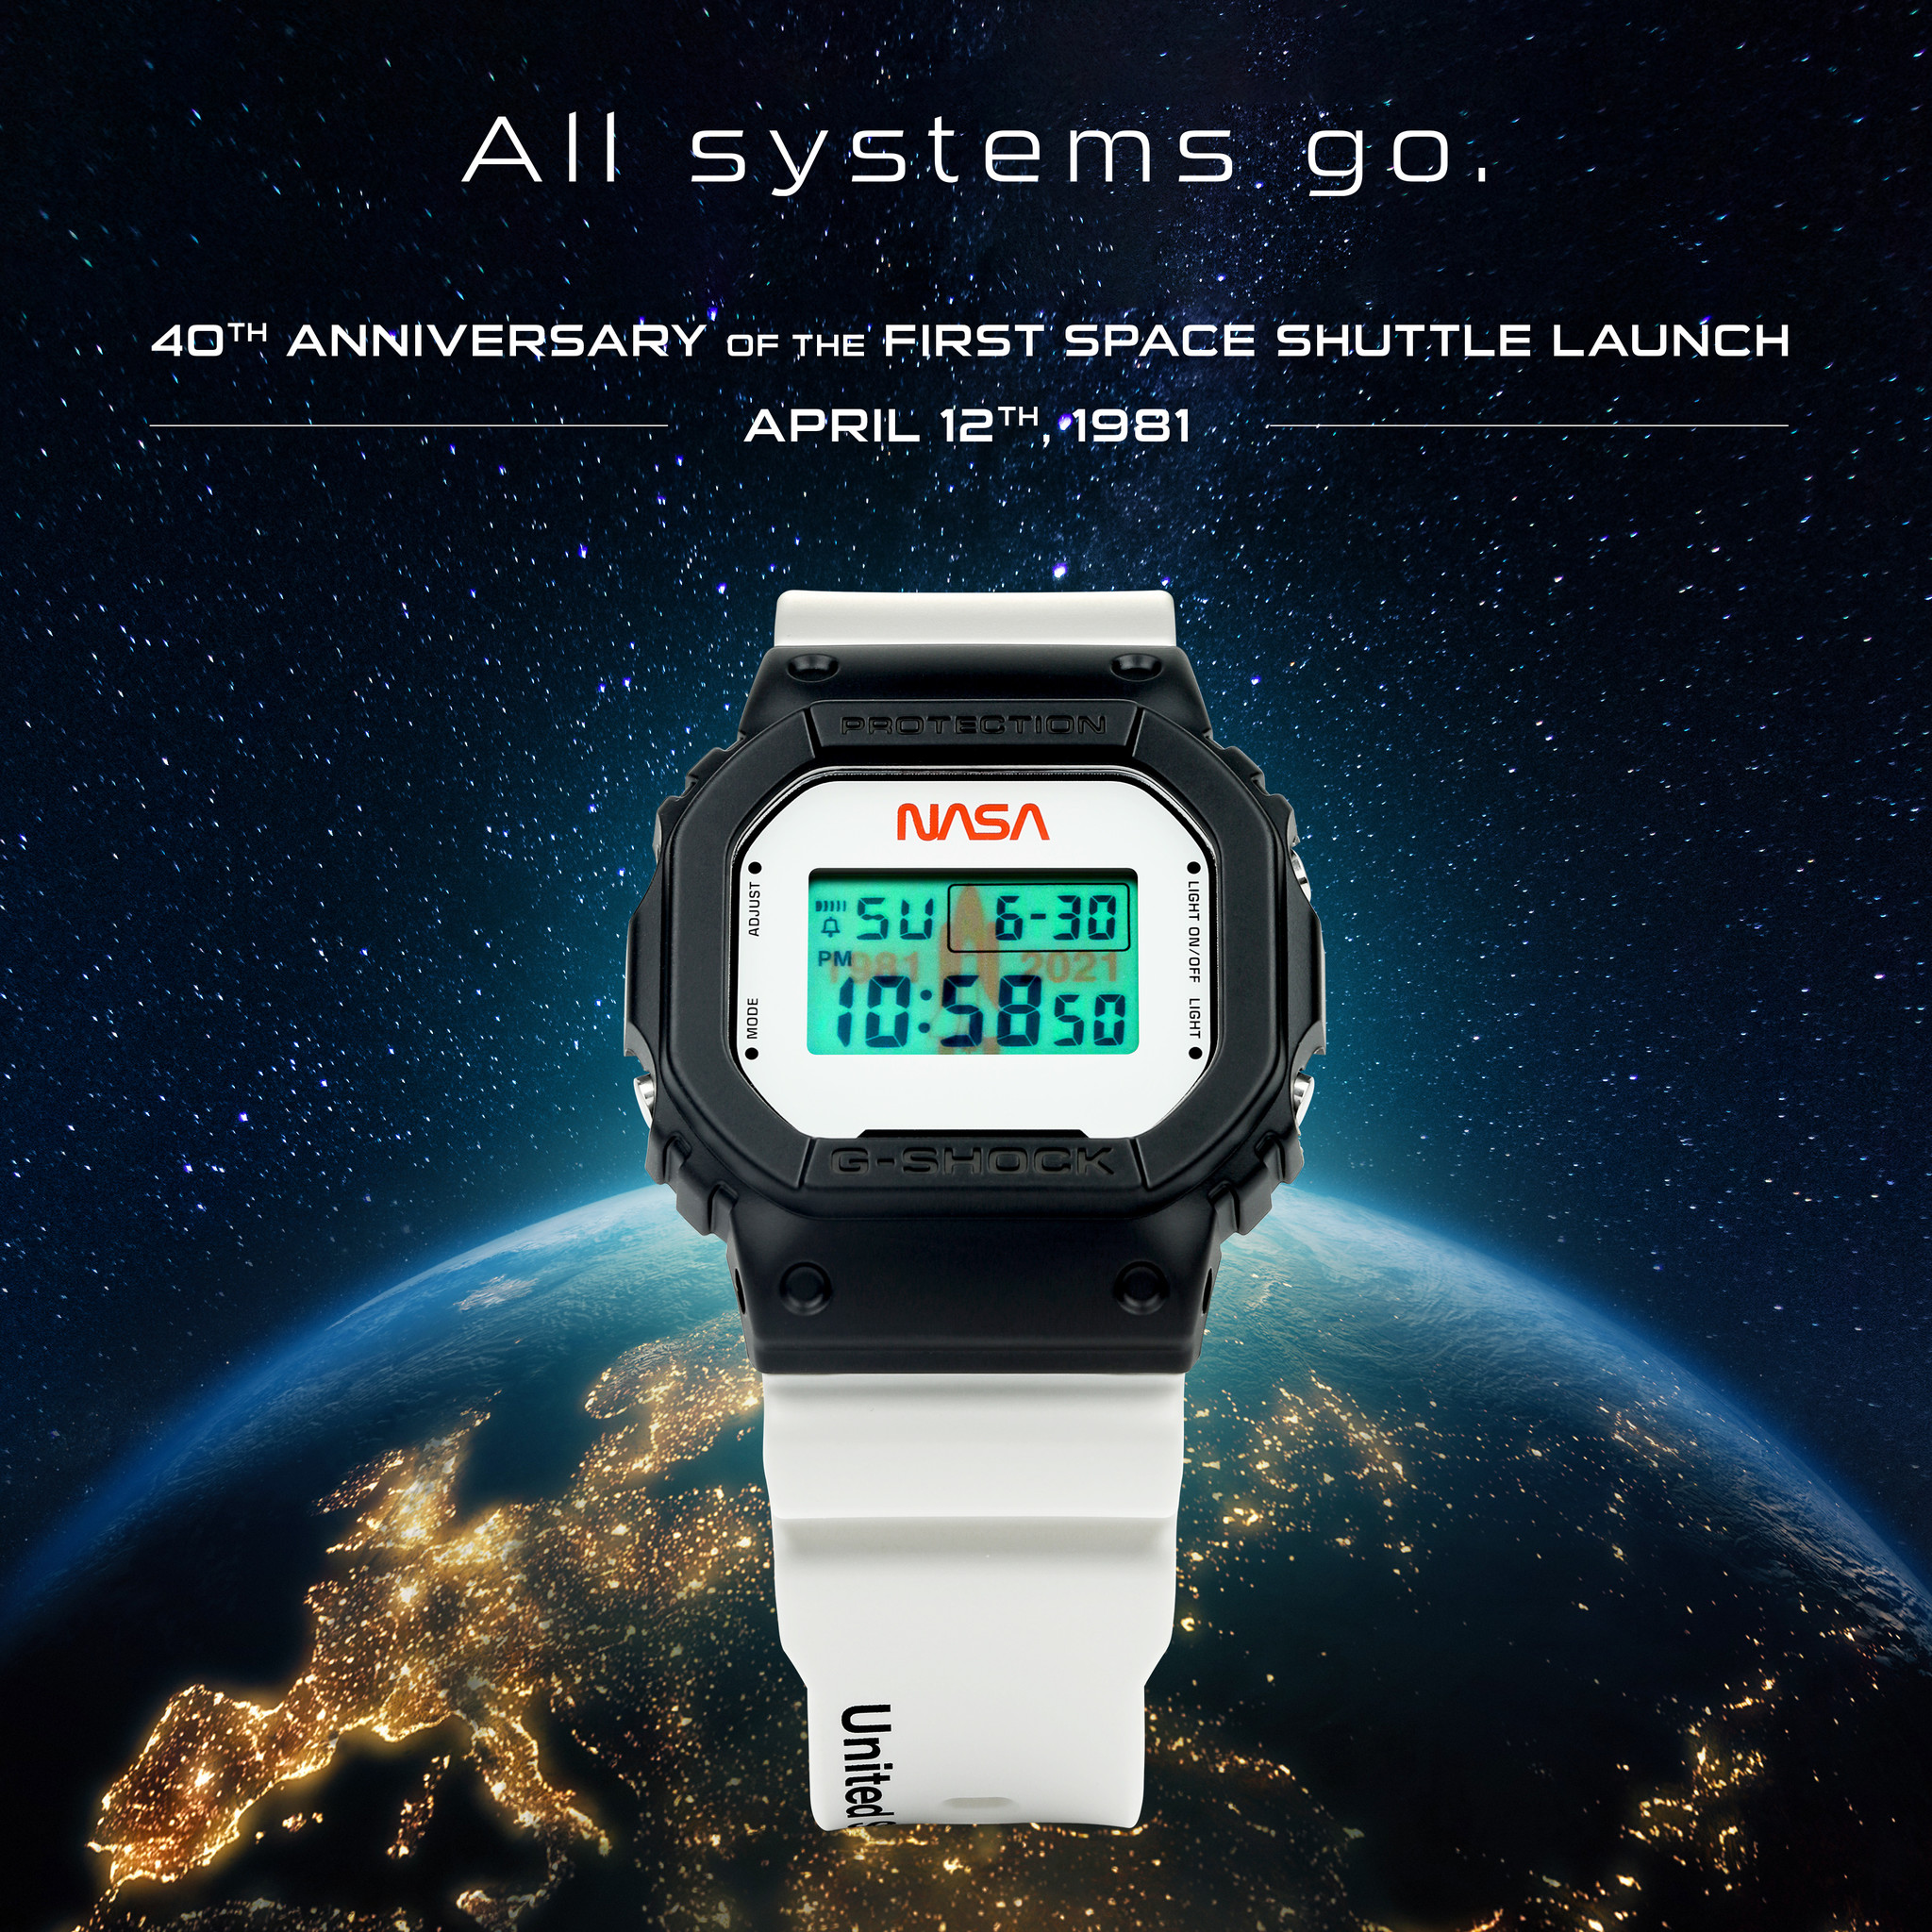 Celebrating the 40th Anniversary of Space Exploration